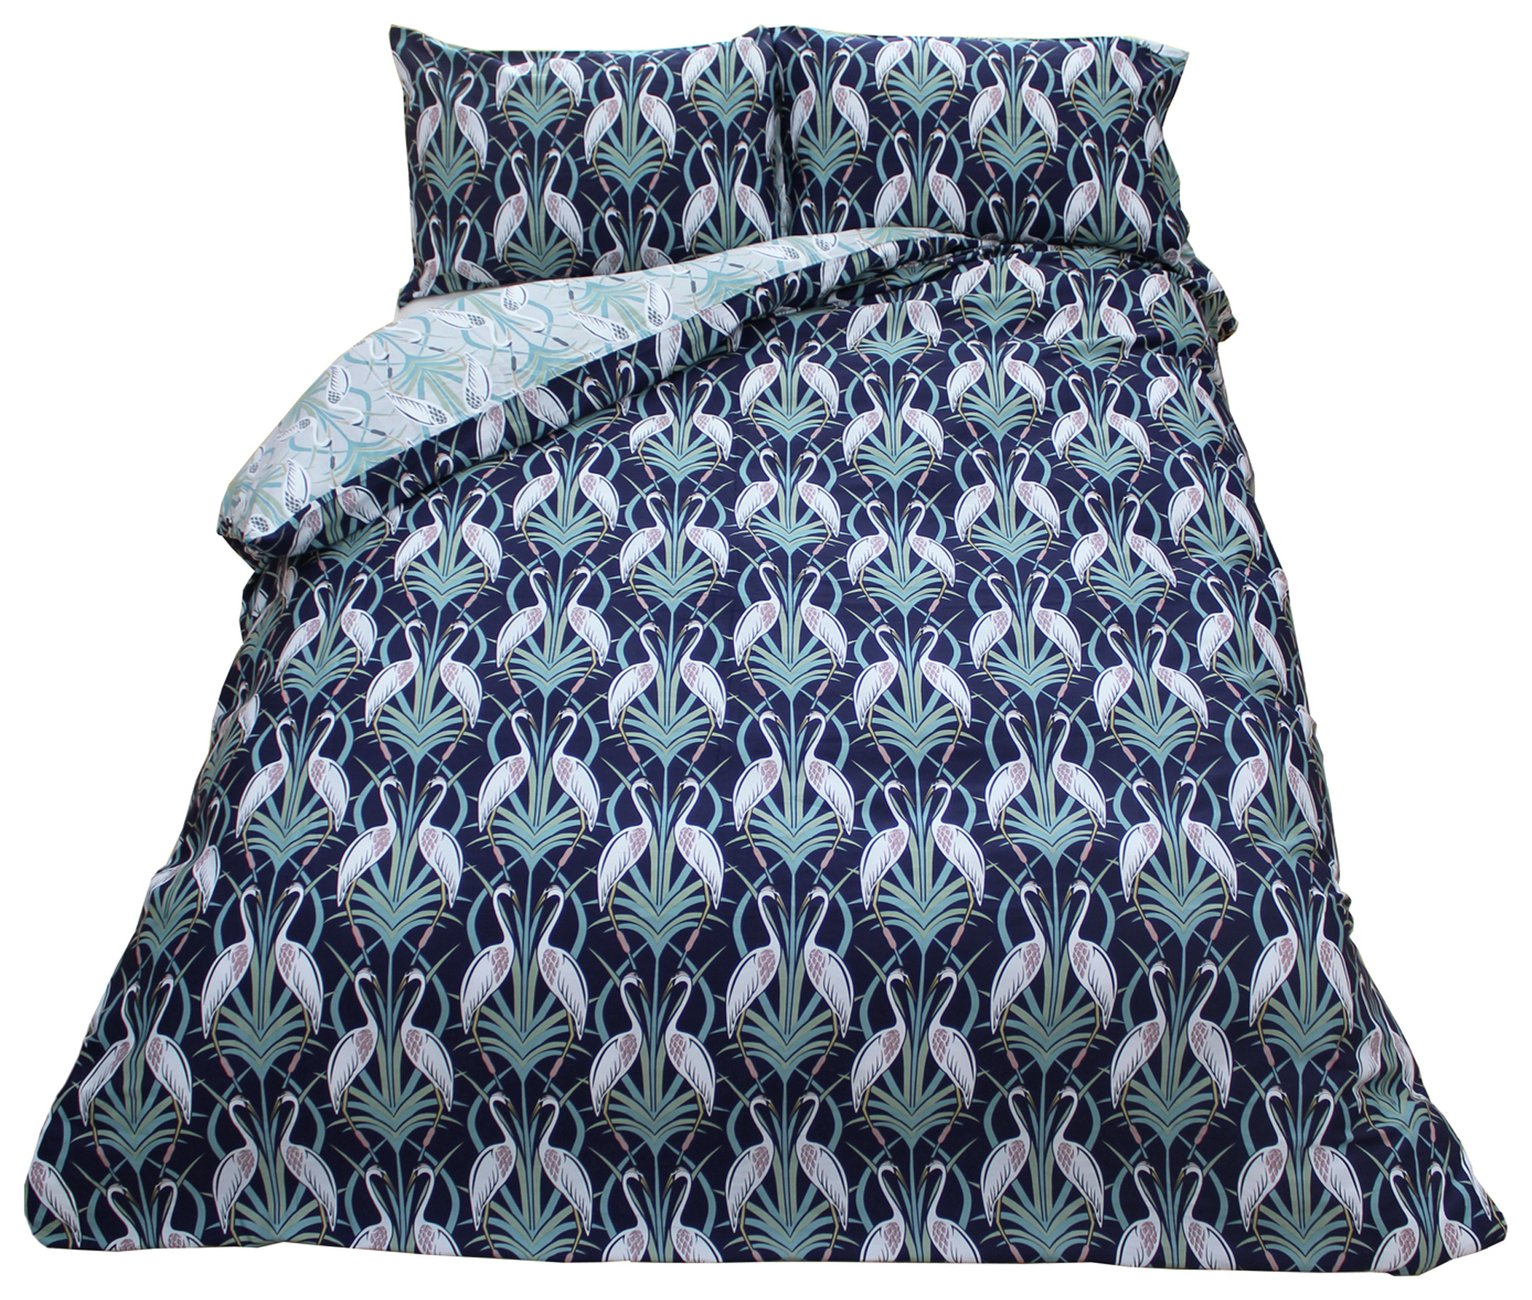 The Chateau by Angel Strawbridge Heron Bedding Set - Single